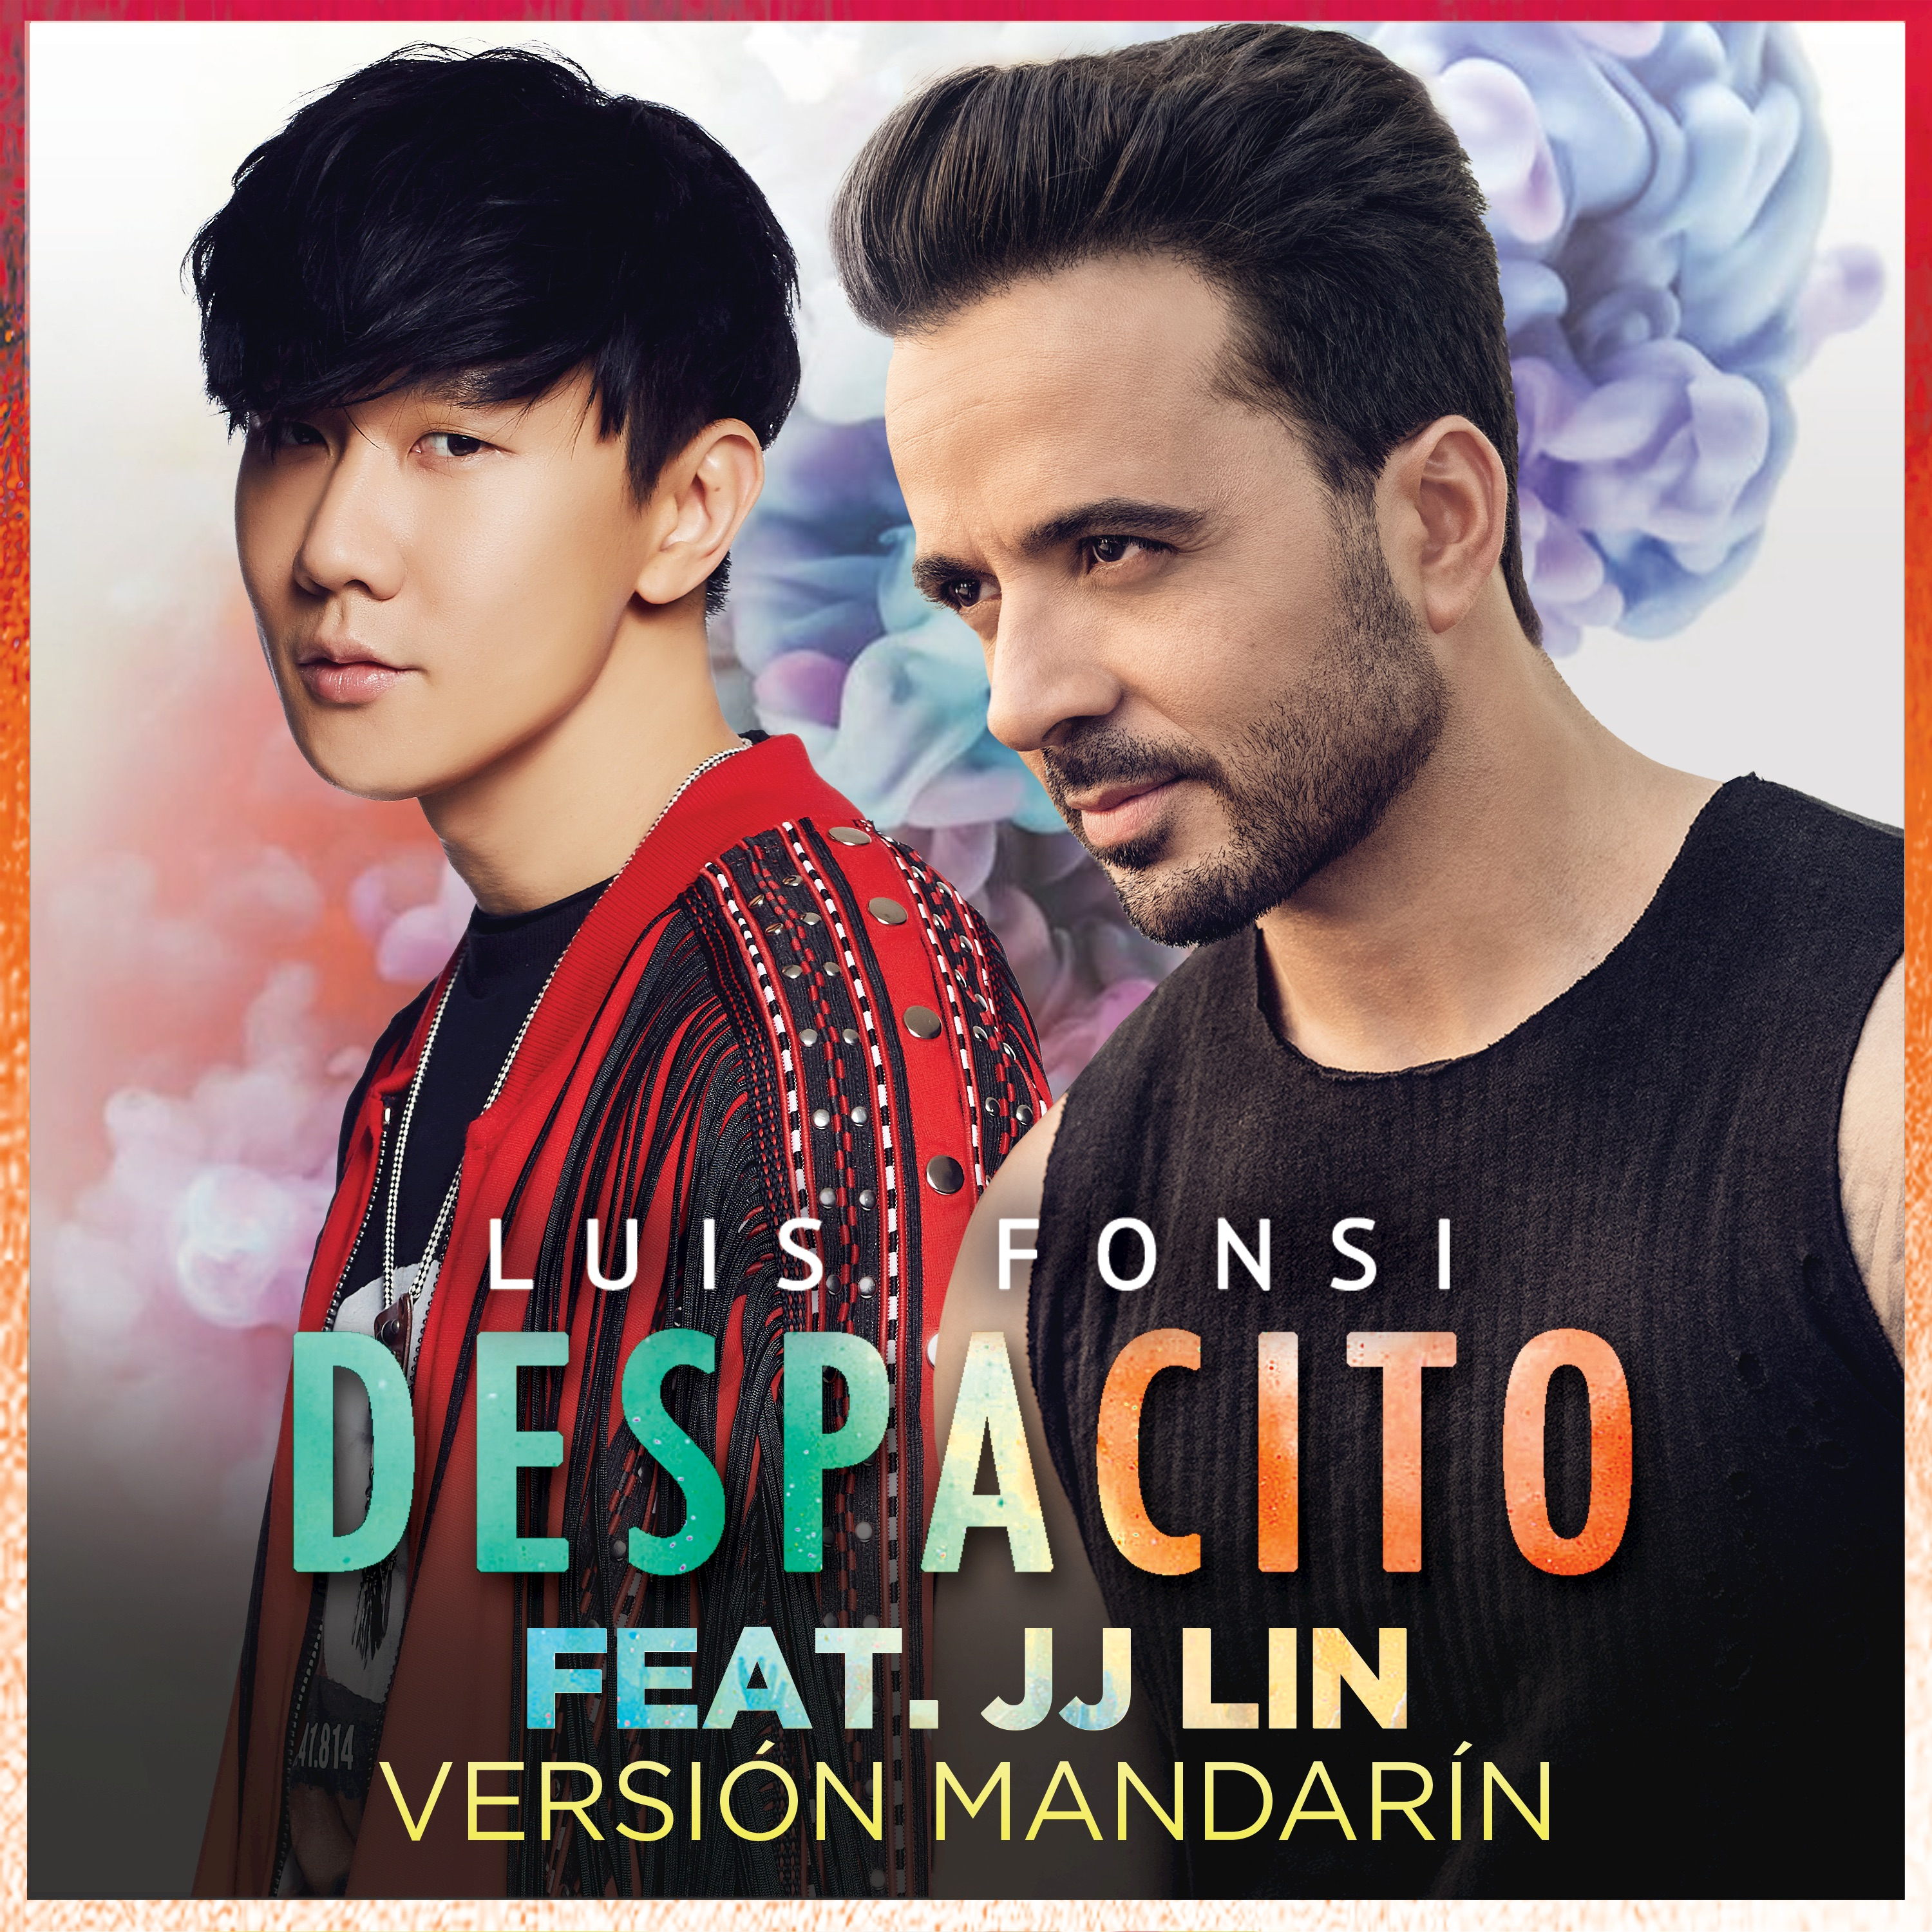 Despacito (feat. JJ LIN) [Mandarin Version] by Luis Fonsi